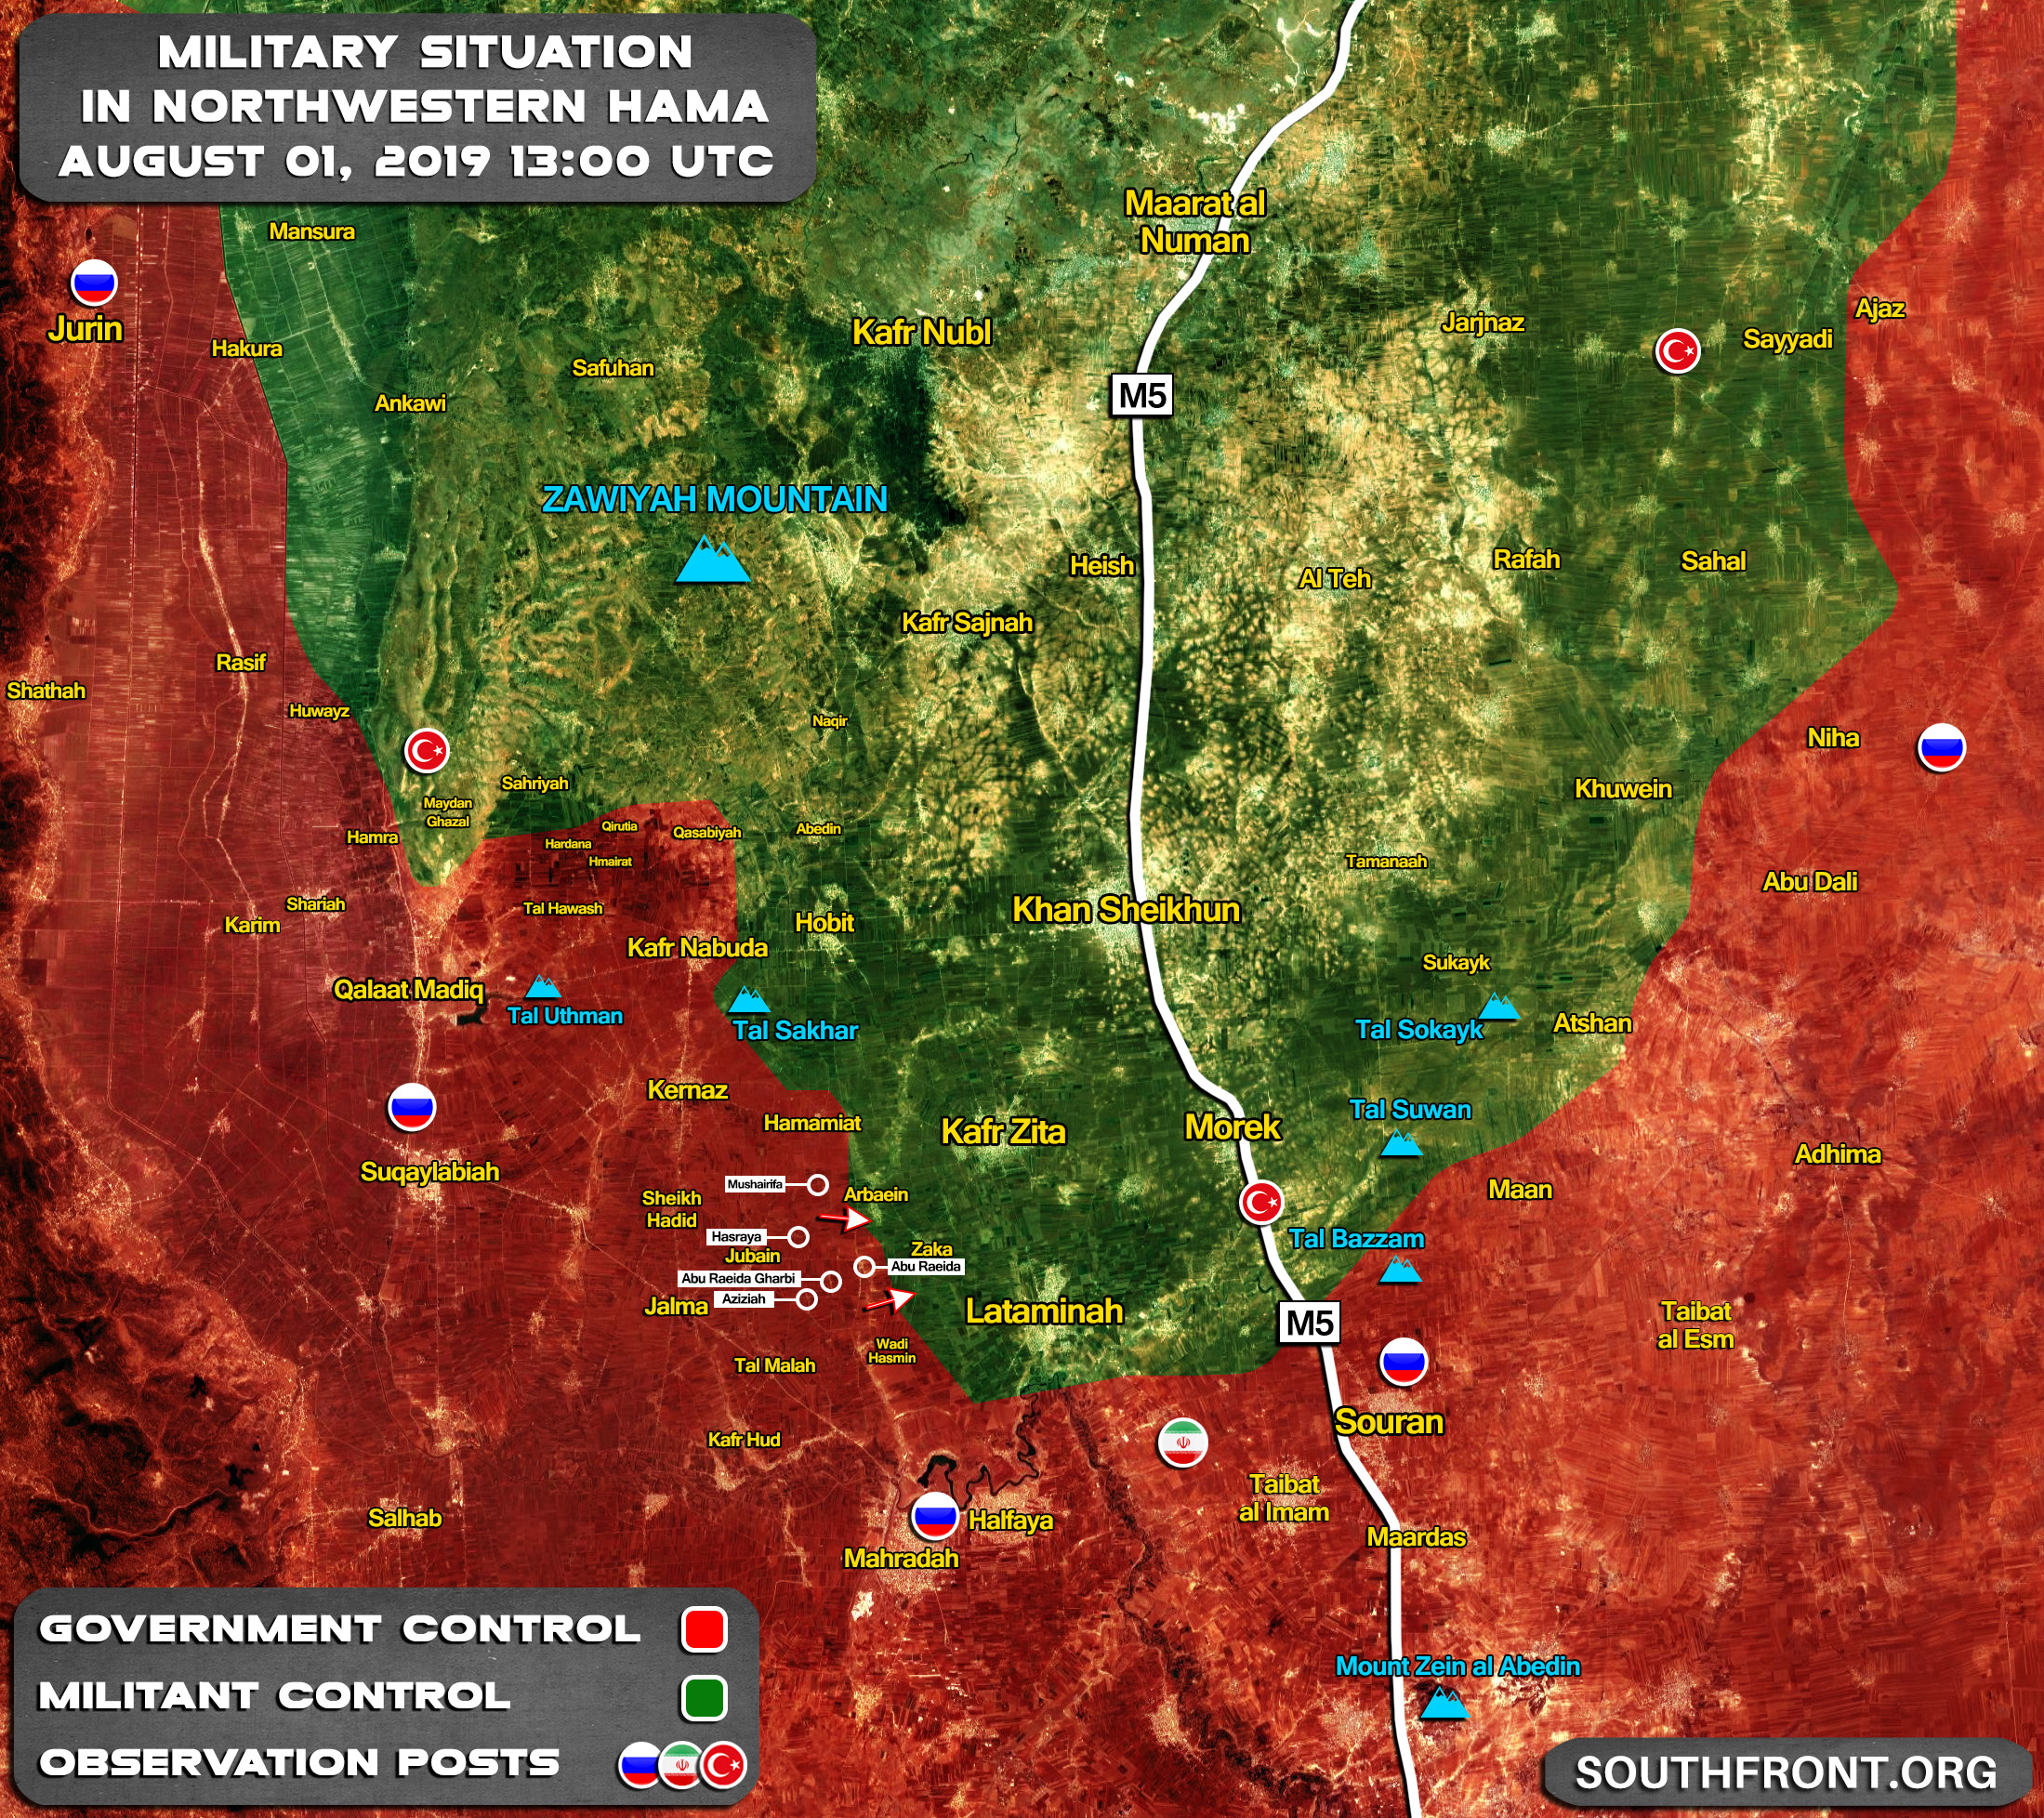 Syrian Army Swamps Militants' Defenses In Northern Hama, Liberates Multiple Villages (Map)